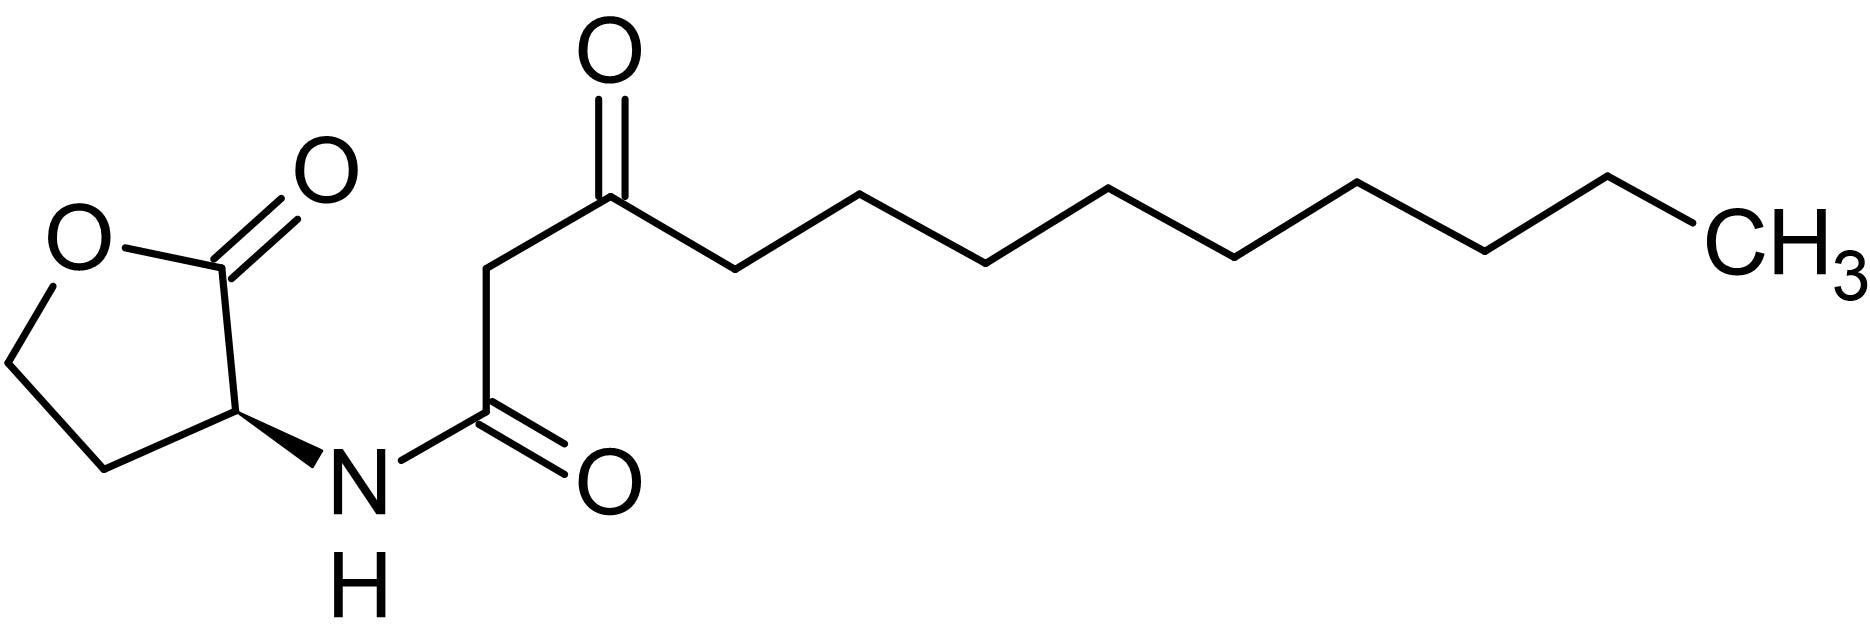 Chemical Structure - N-(3-Oxododecanoyl)-L-homoserine lactone, involved in quorum sensing (ab145509)